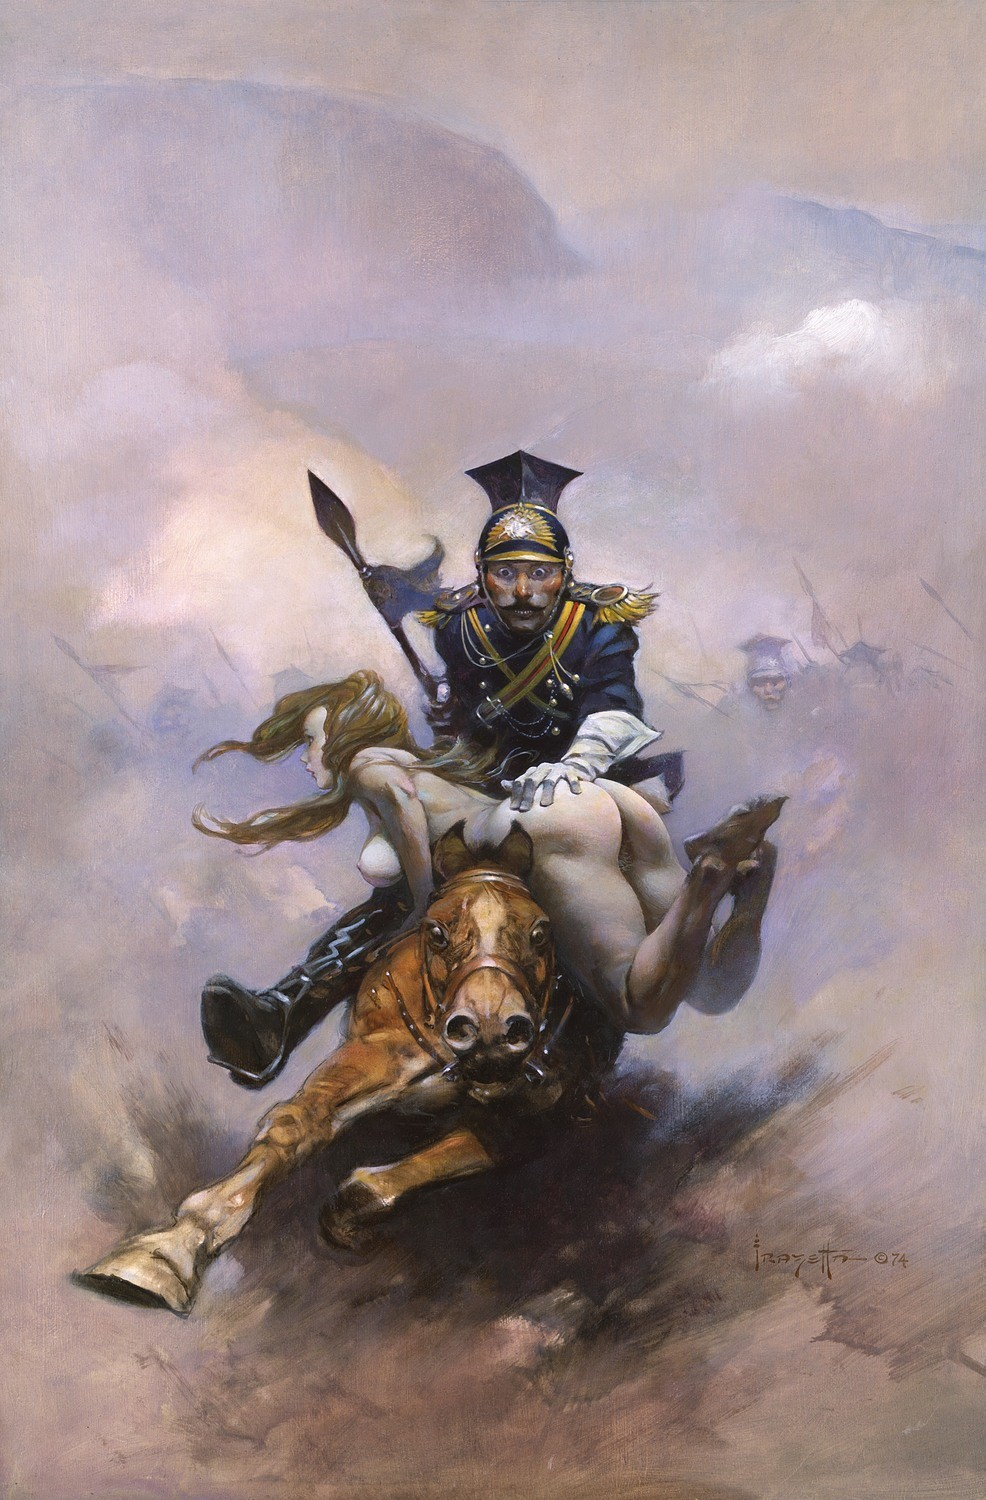 Flashman On The Charge (No - 101)